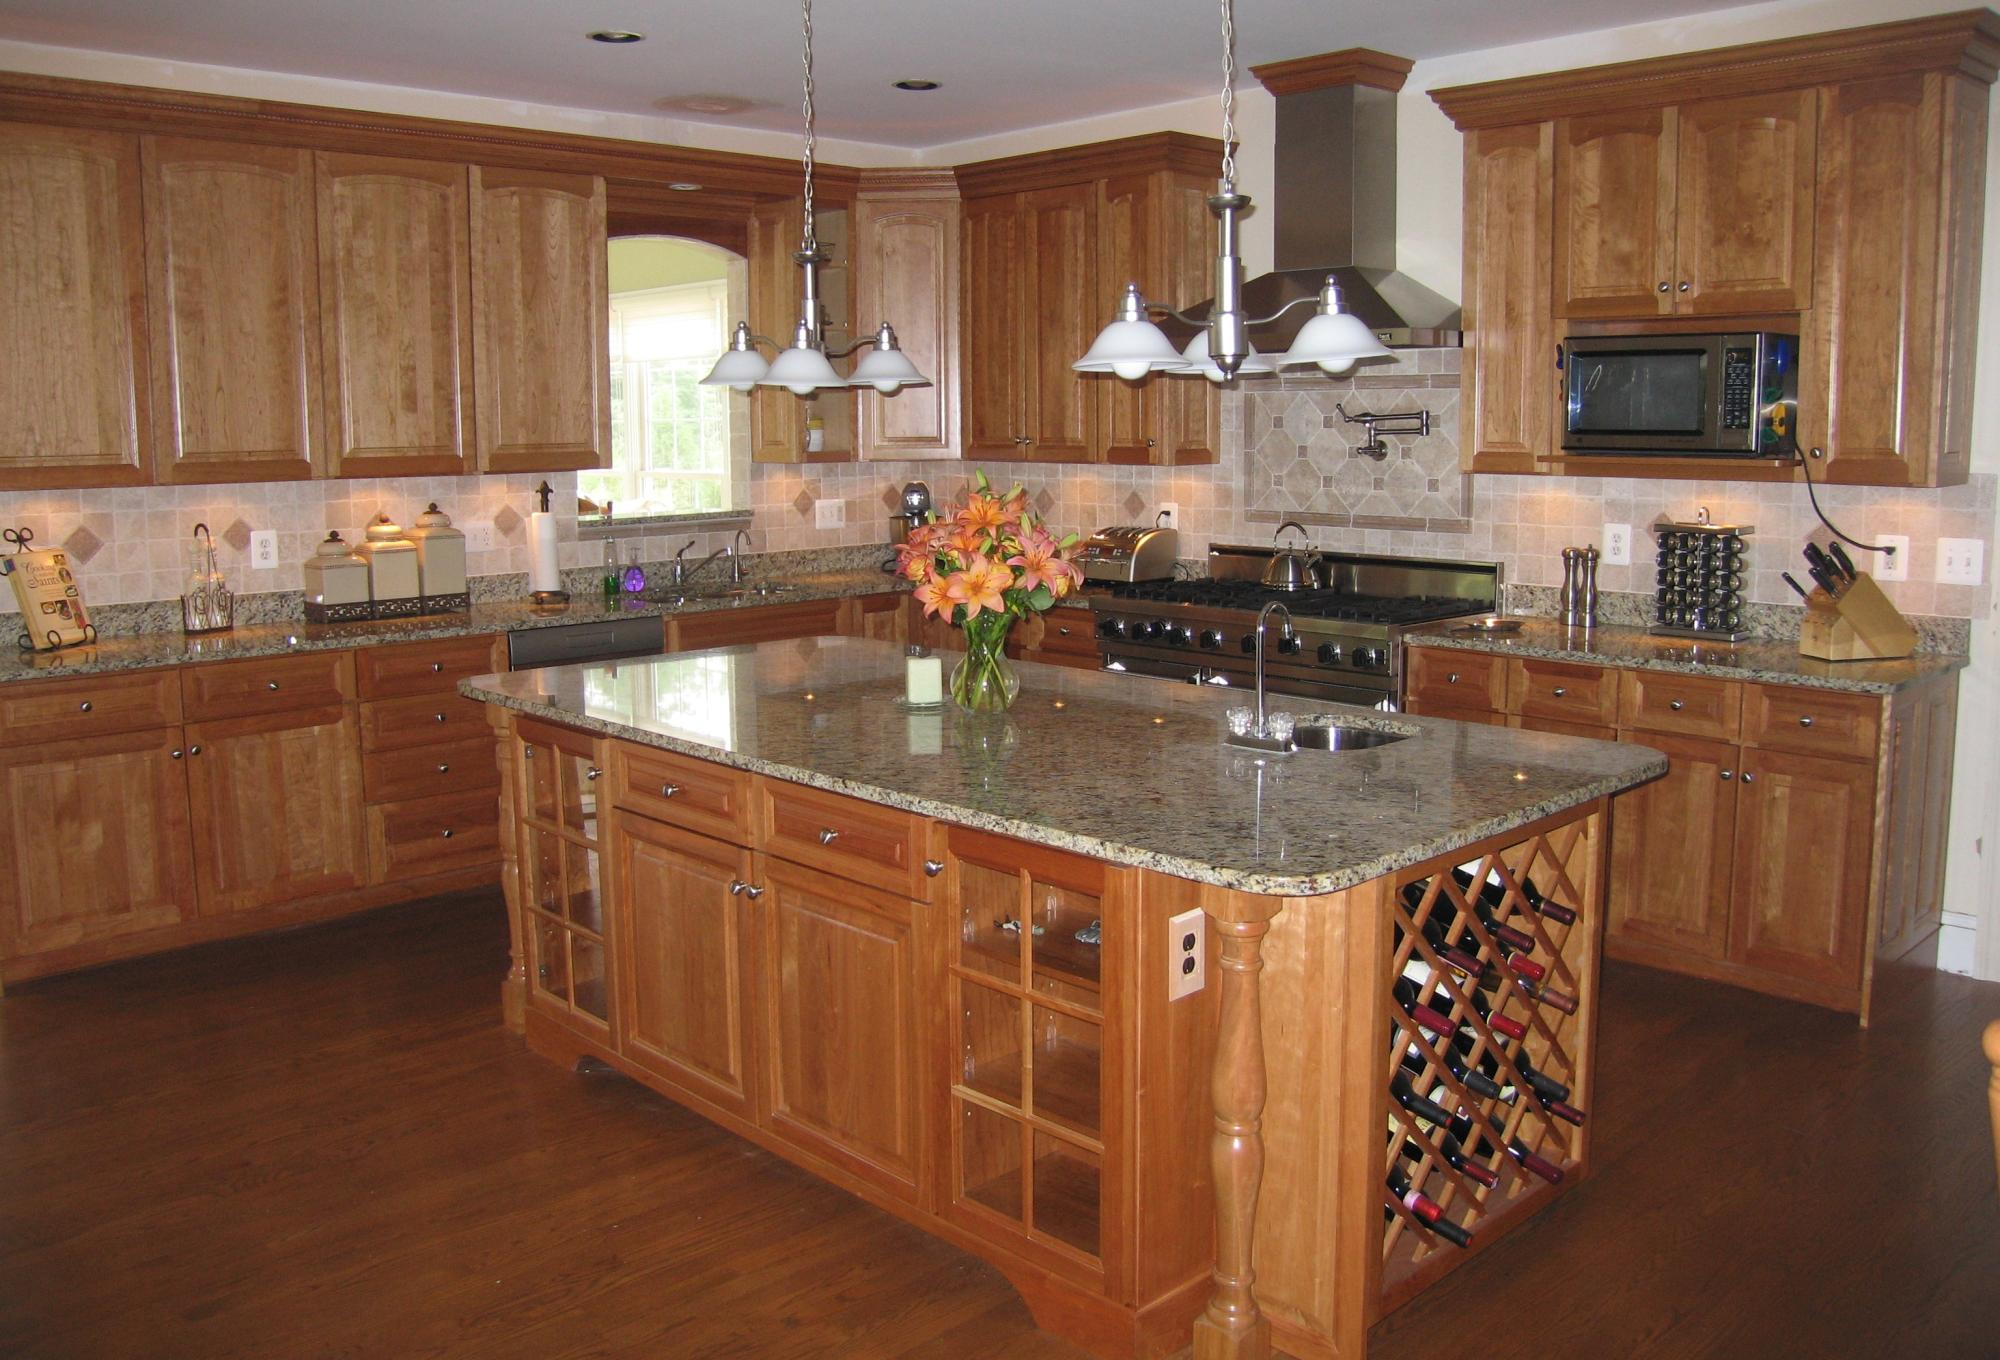 Kitchen_004.jpg